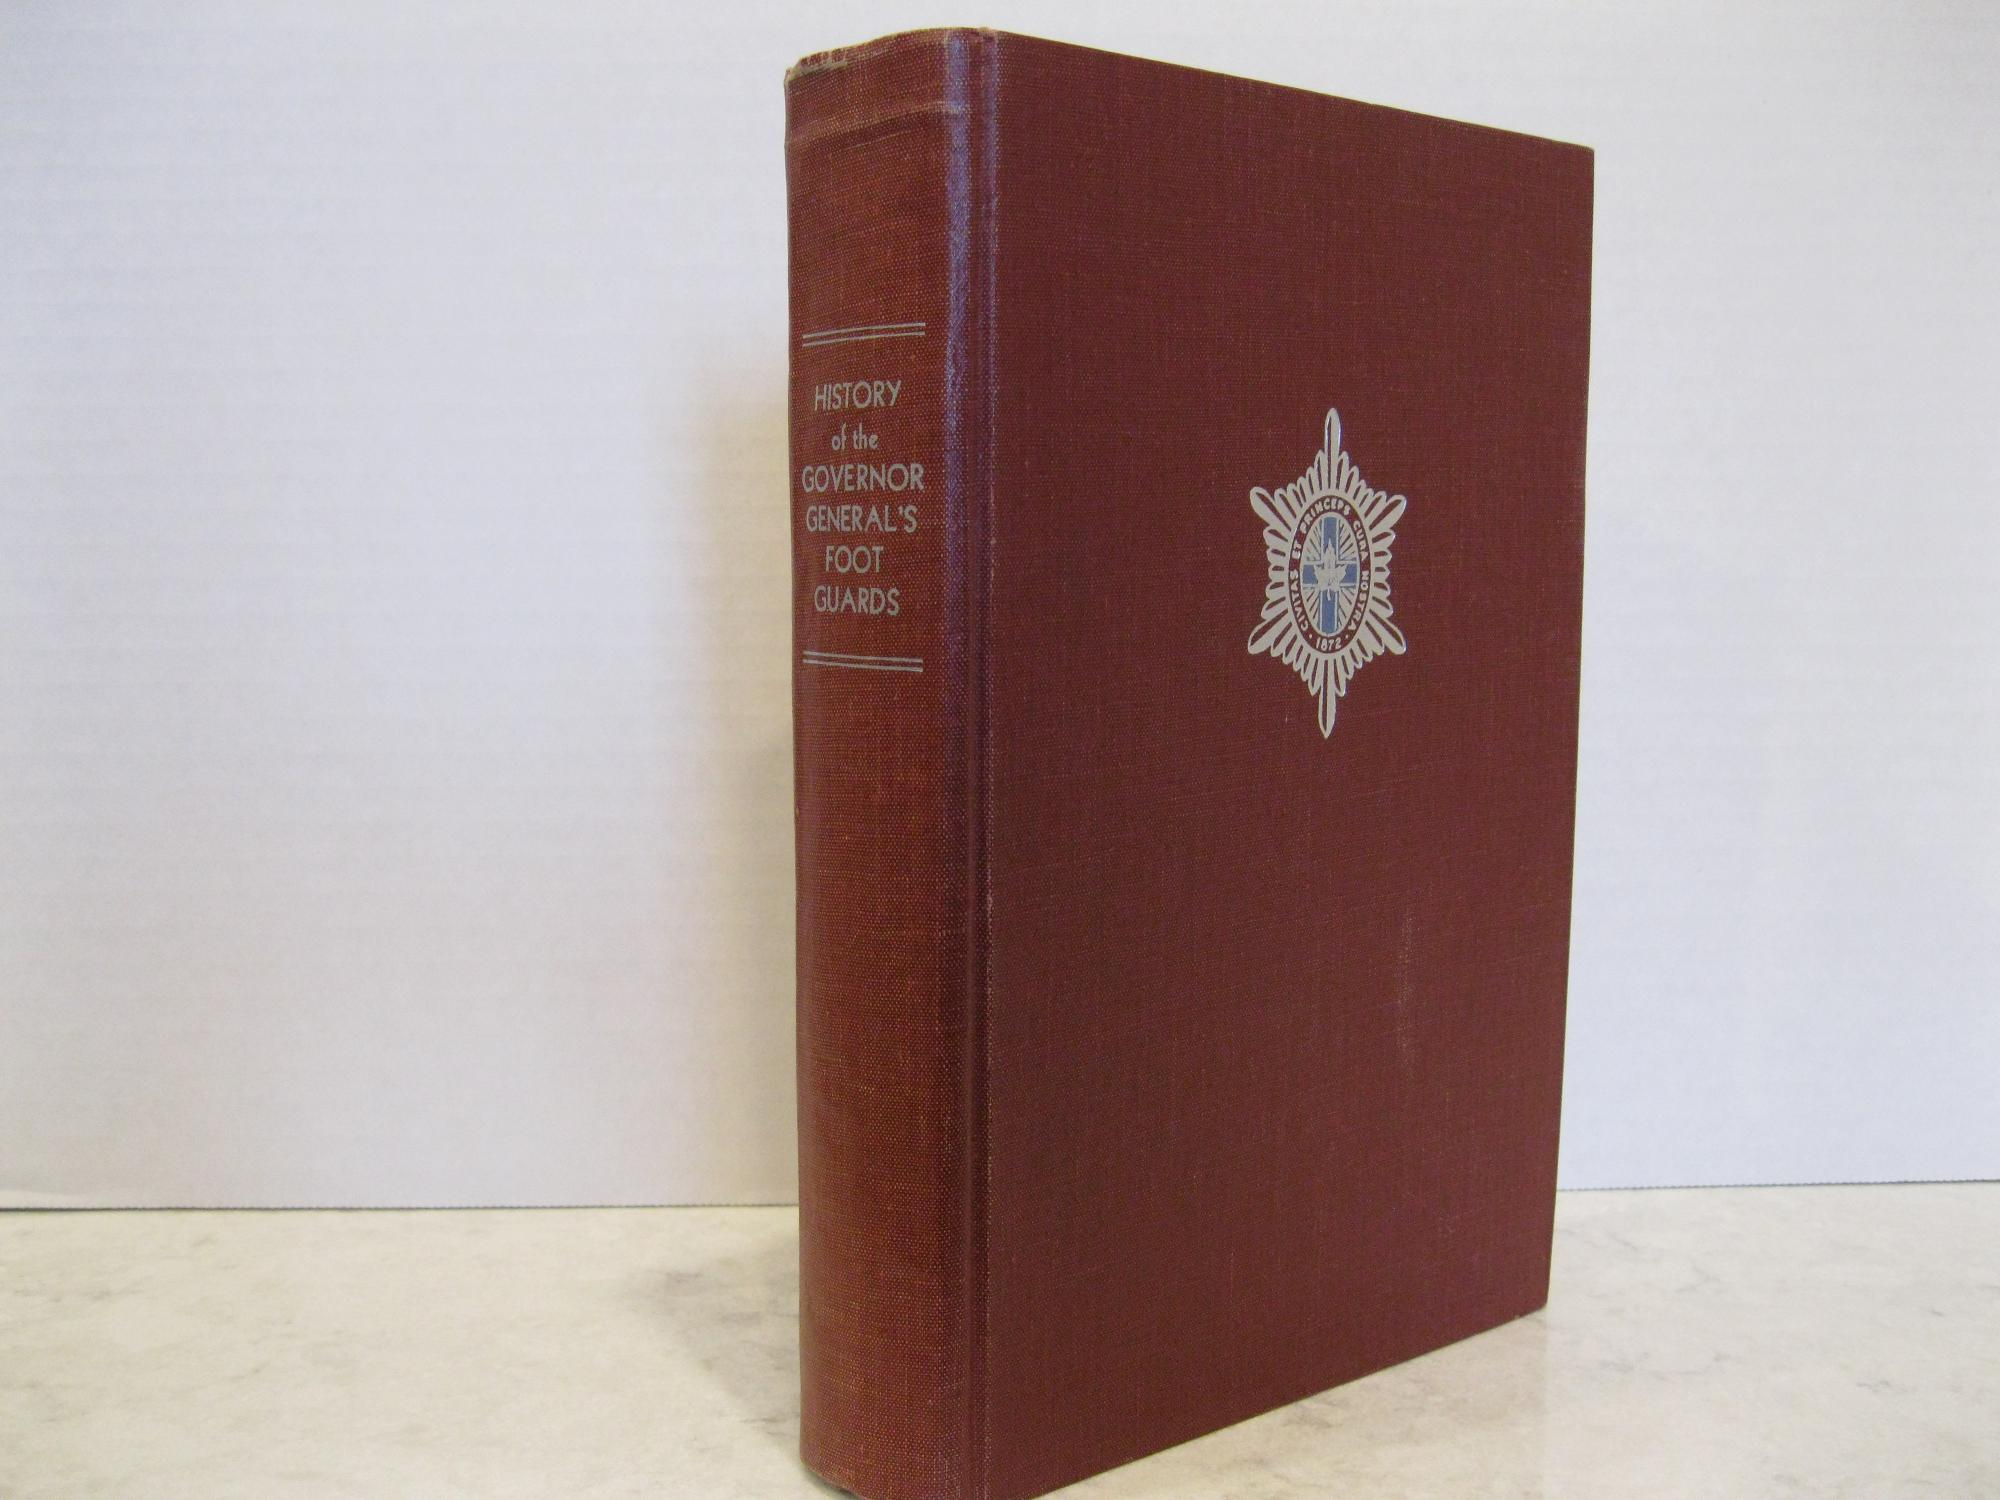 THE_REGIMENTAL_HISTORY_OF_THE_GOVERNOR_GENERAL'S_FOOT_GUARDS_BAYLAY,_Lt.-Col._G.T._(Preface)_[Very_Good]_[Hardcover]